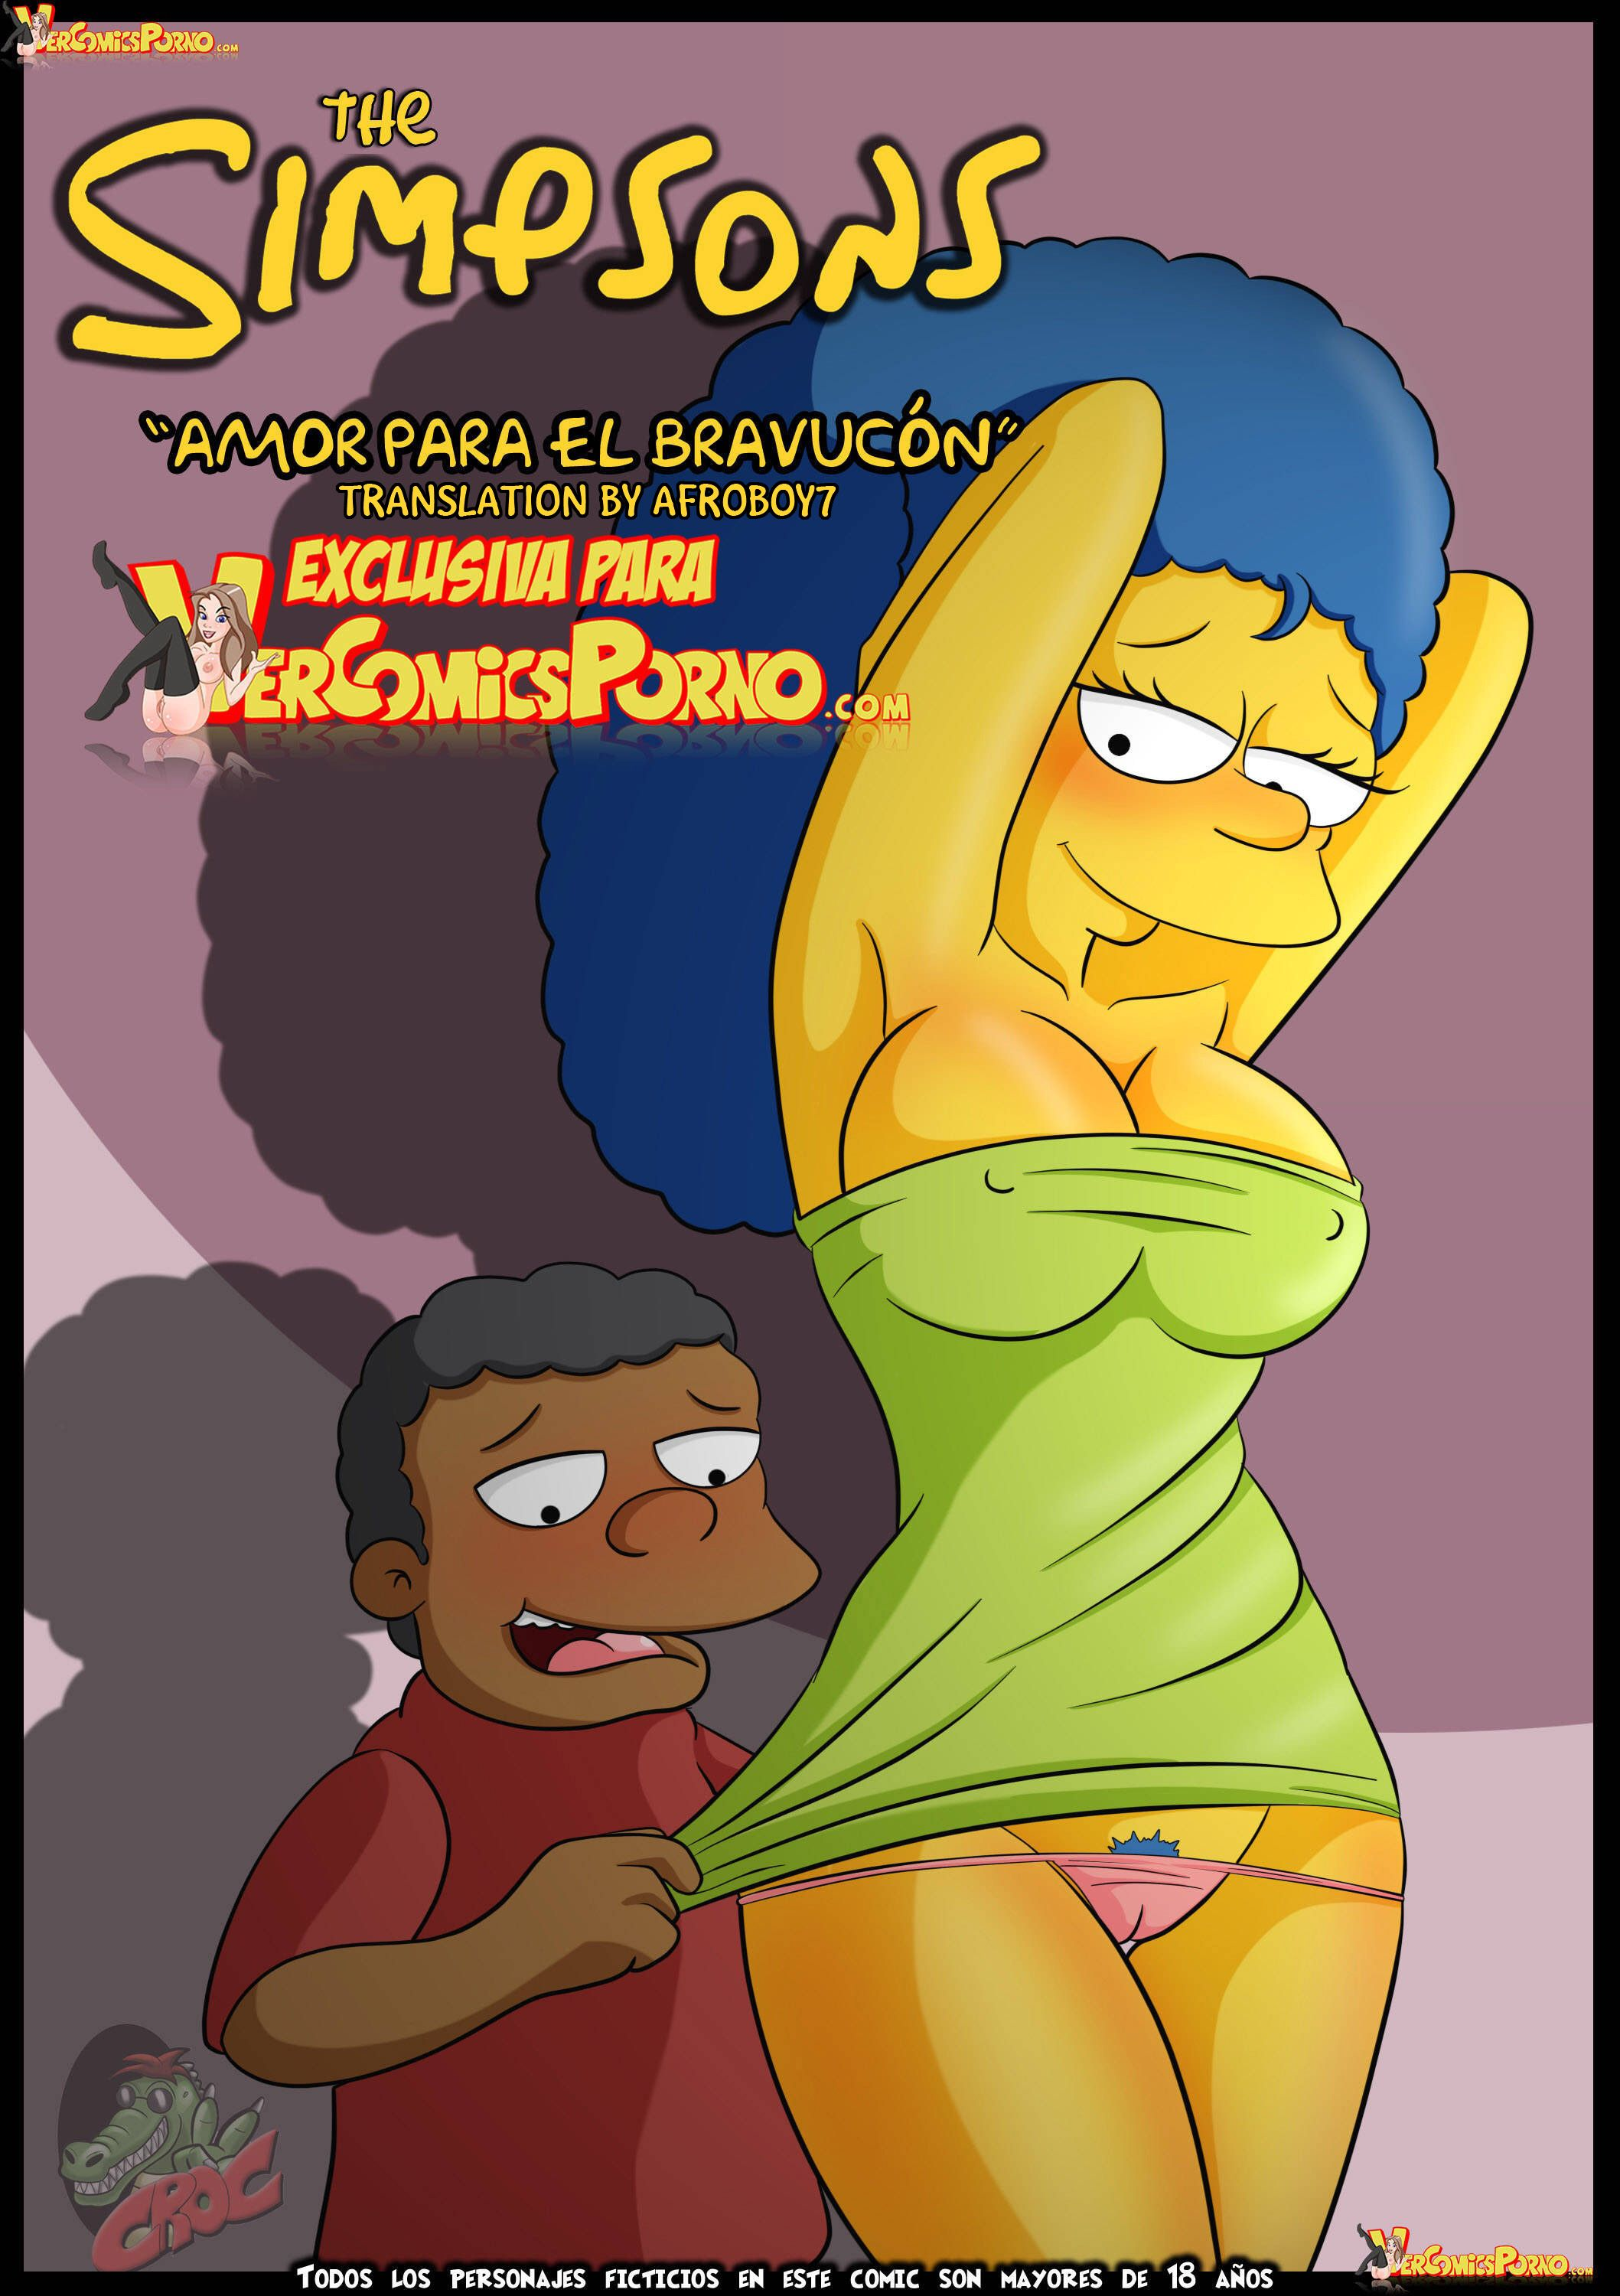 Annika Van Houten Porn - Page 1 of the porn sex comic Croc Comics - The Simpsons - Love for the  Bully for free online